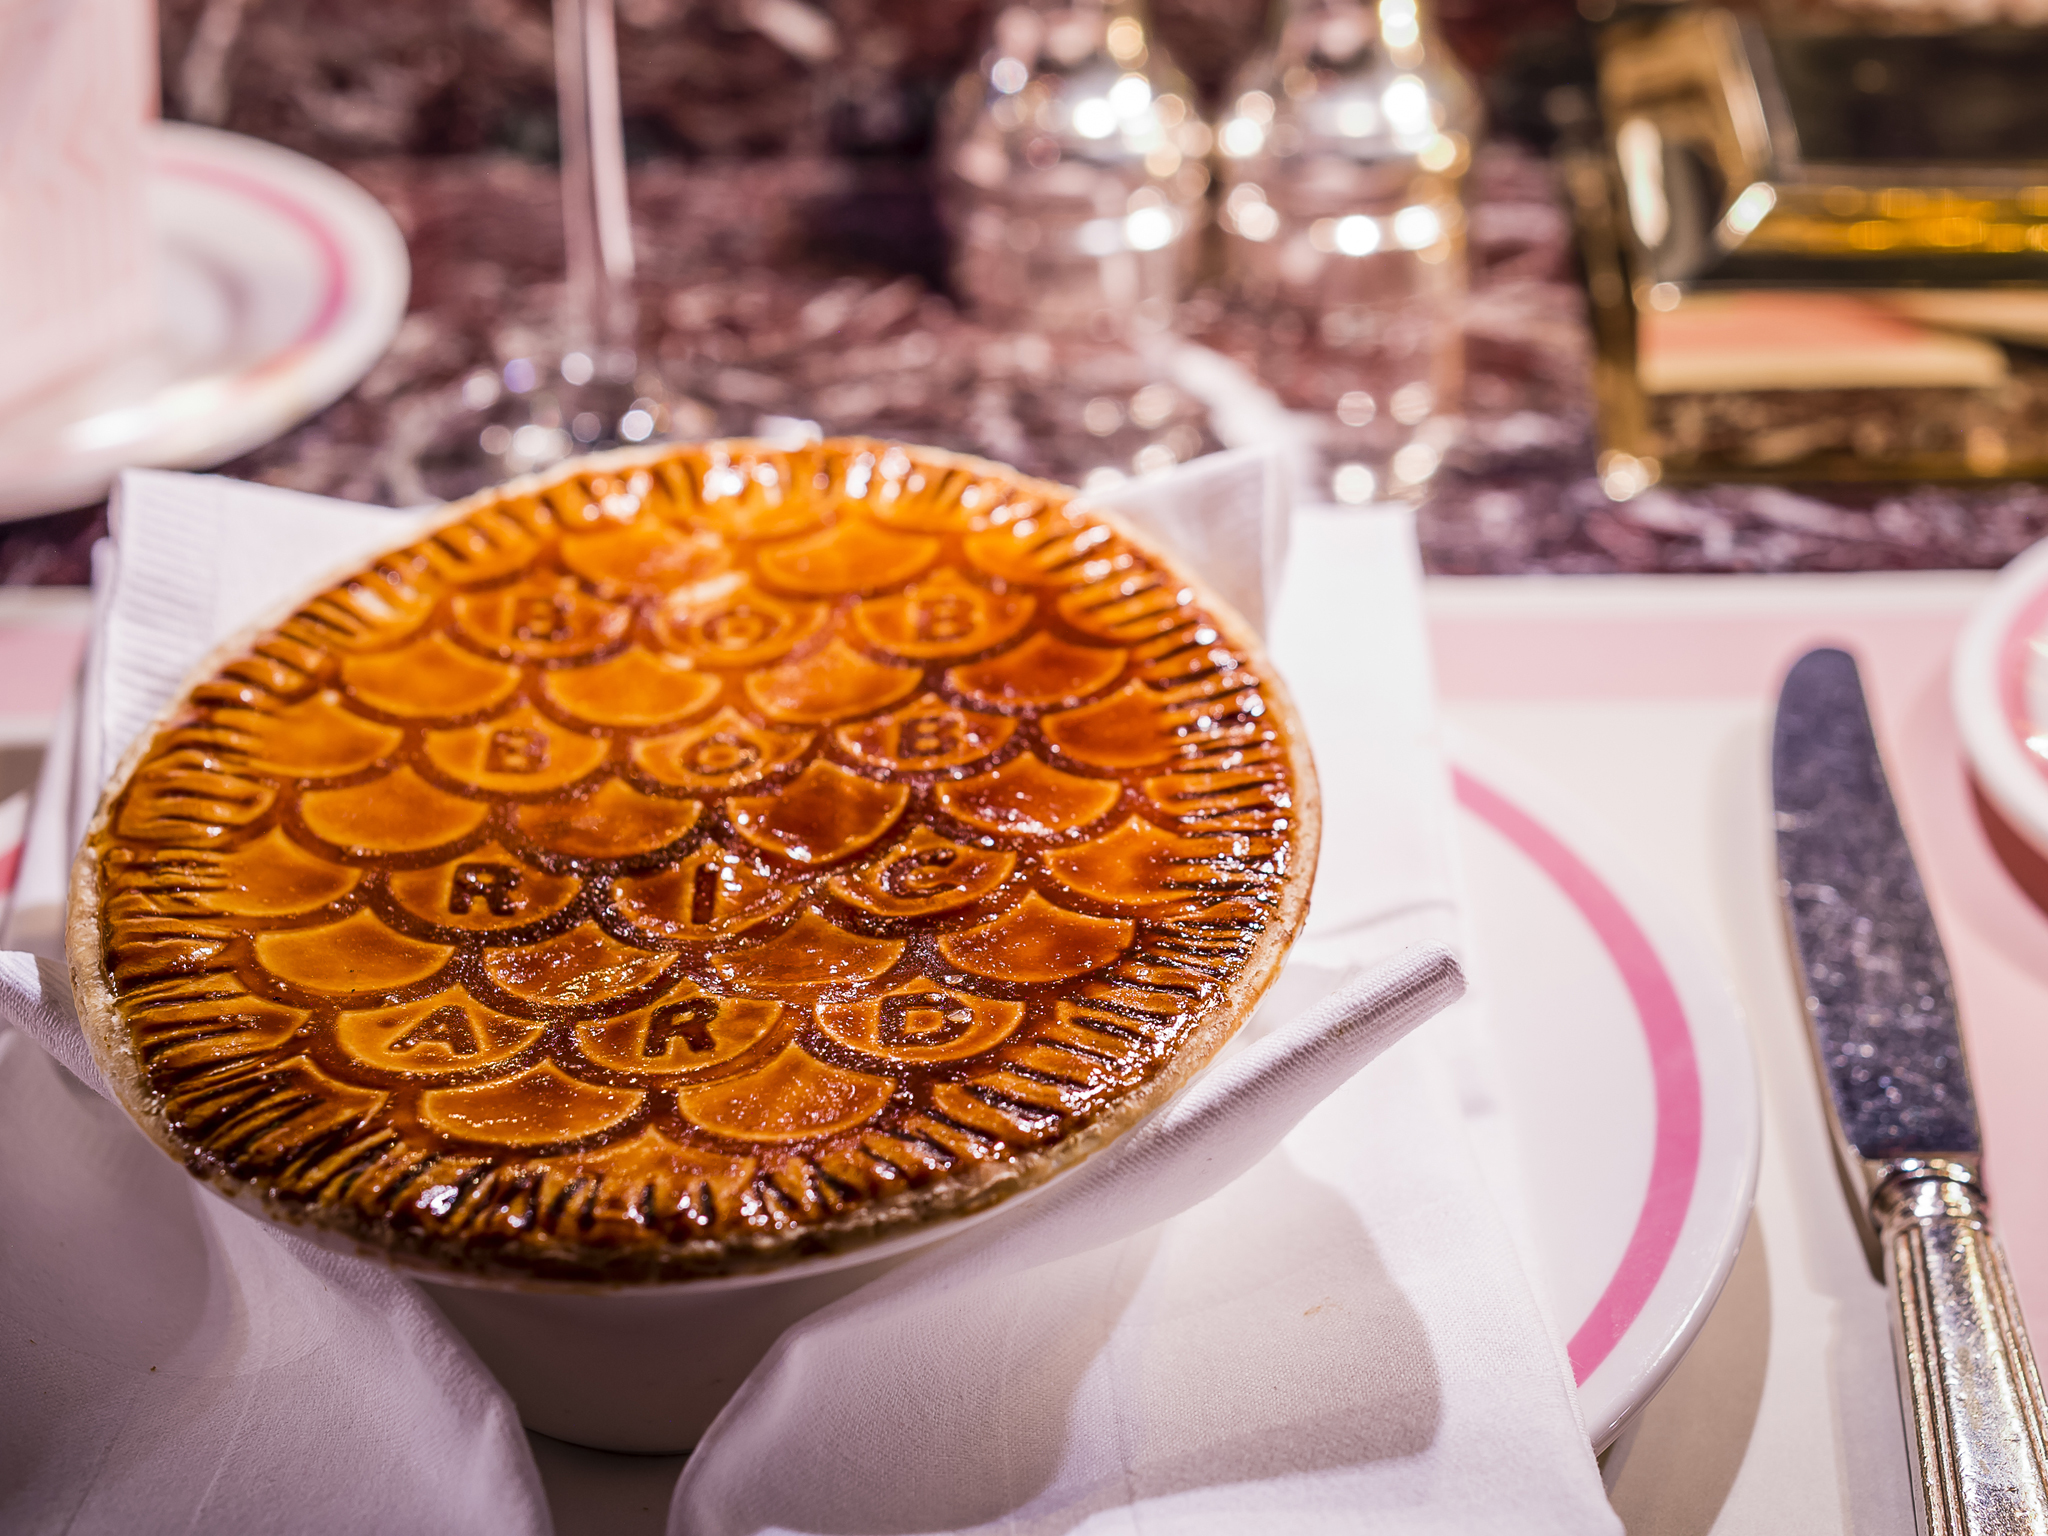 Champagne and truffle humble pie at Bob Bob Ricard